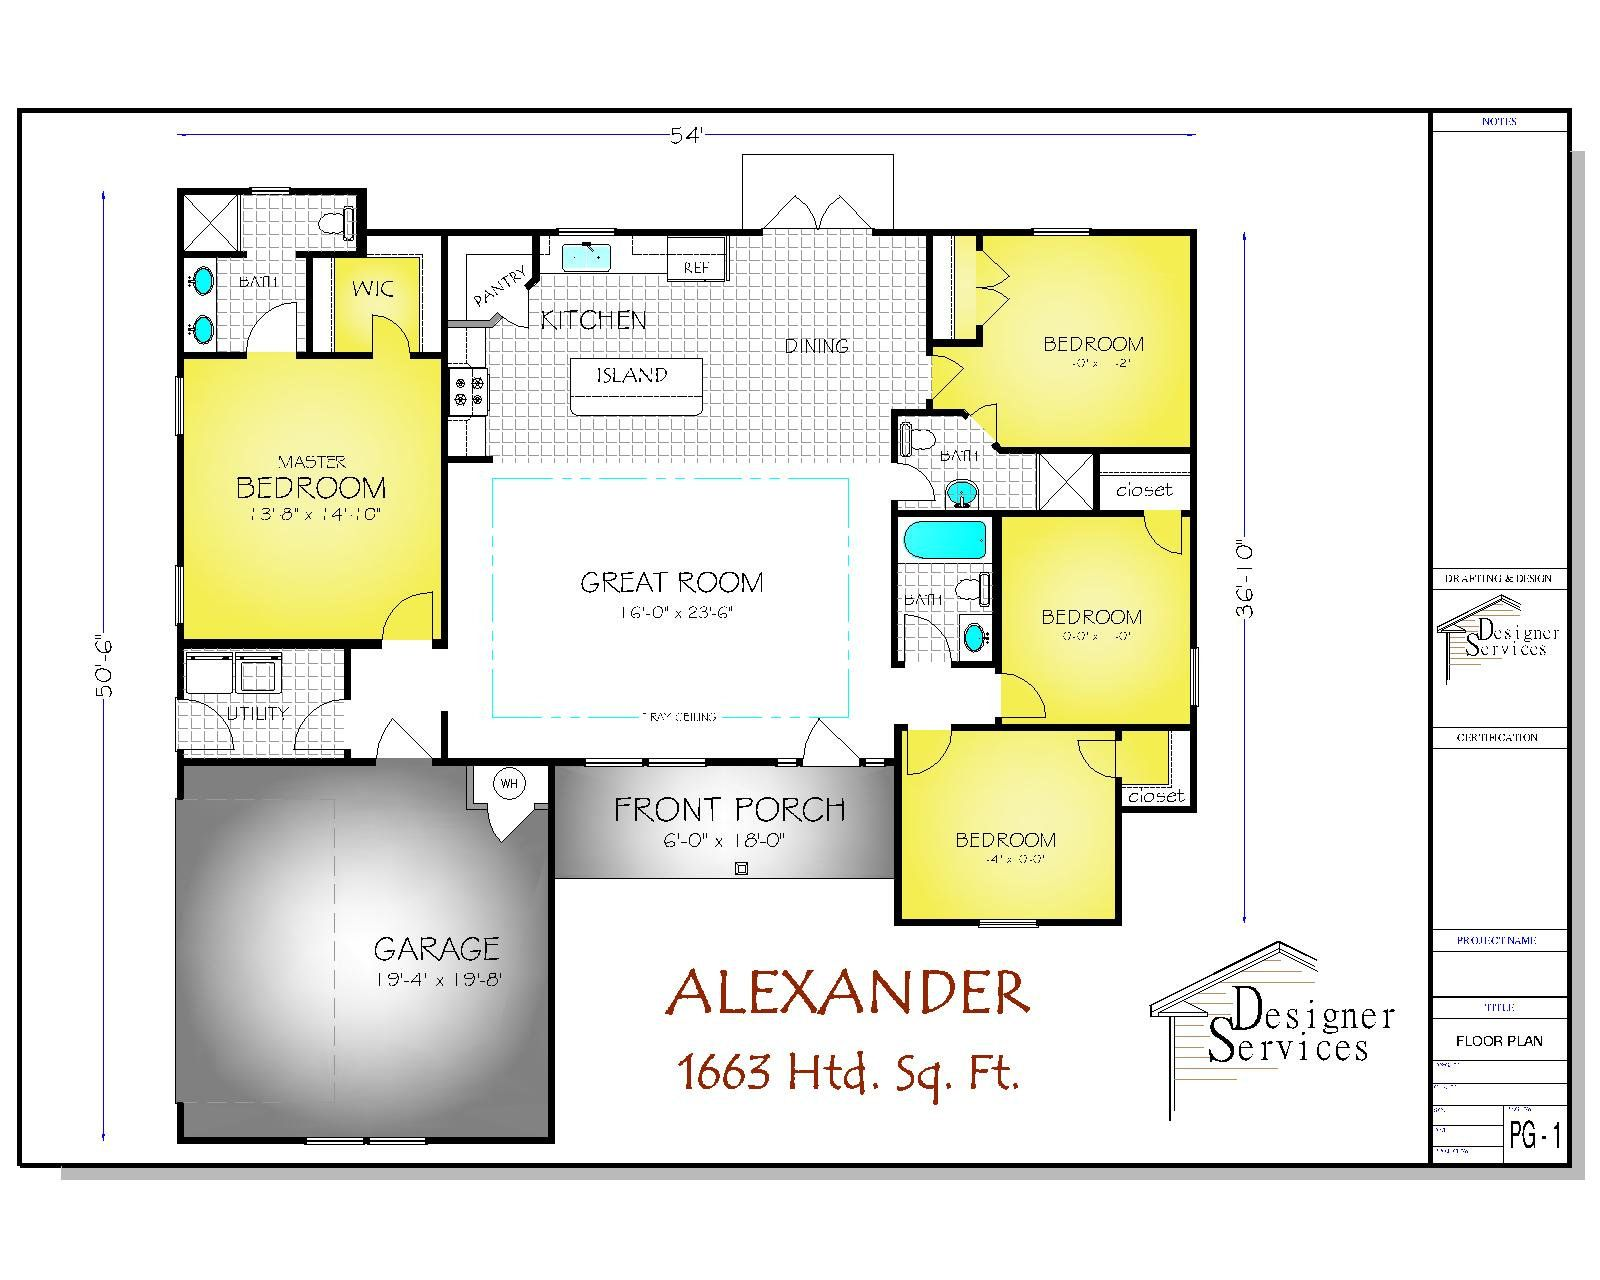 Alexander House Plan 1663 Square Feet House Plans How To Plan Floor Plans